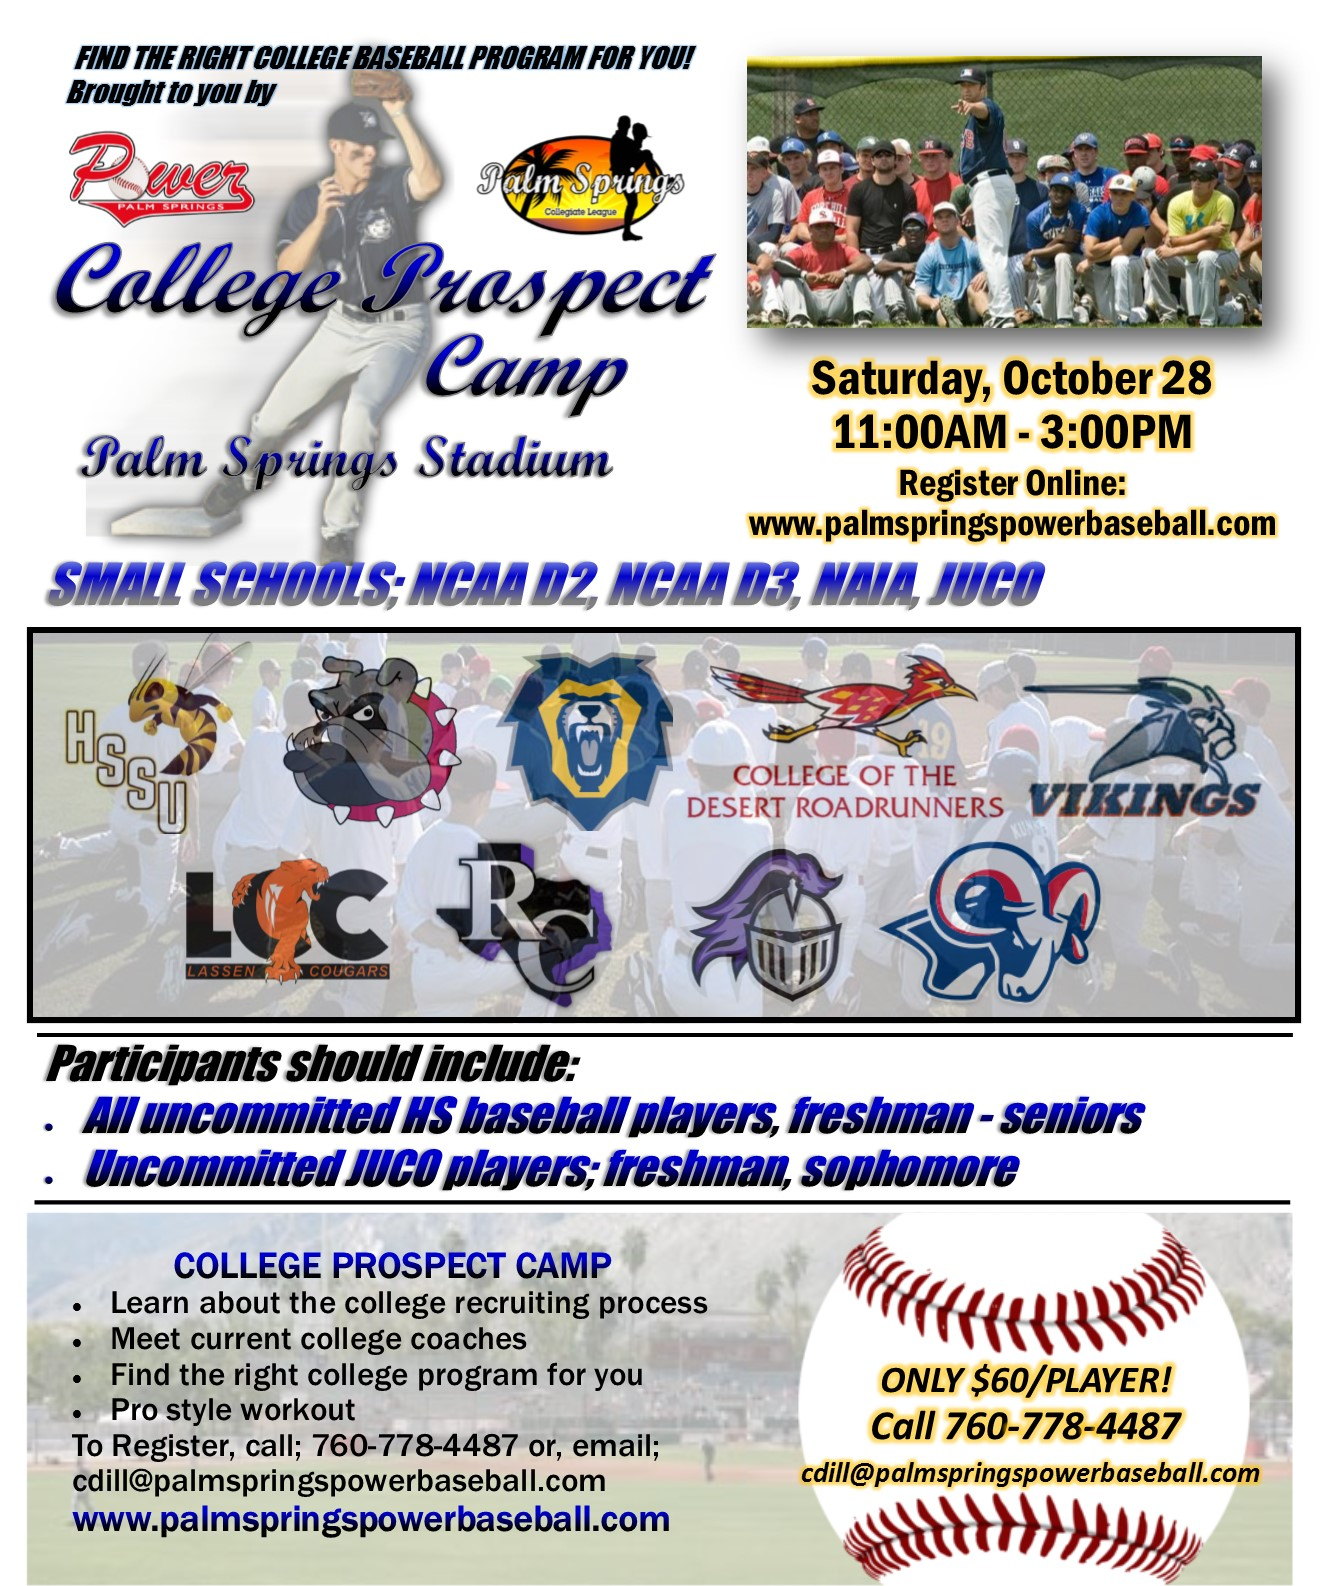 college prospect camp